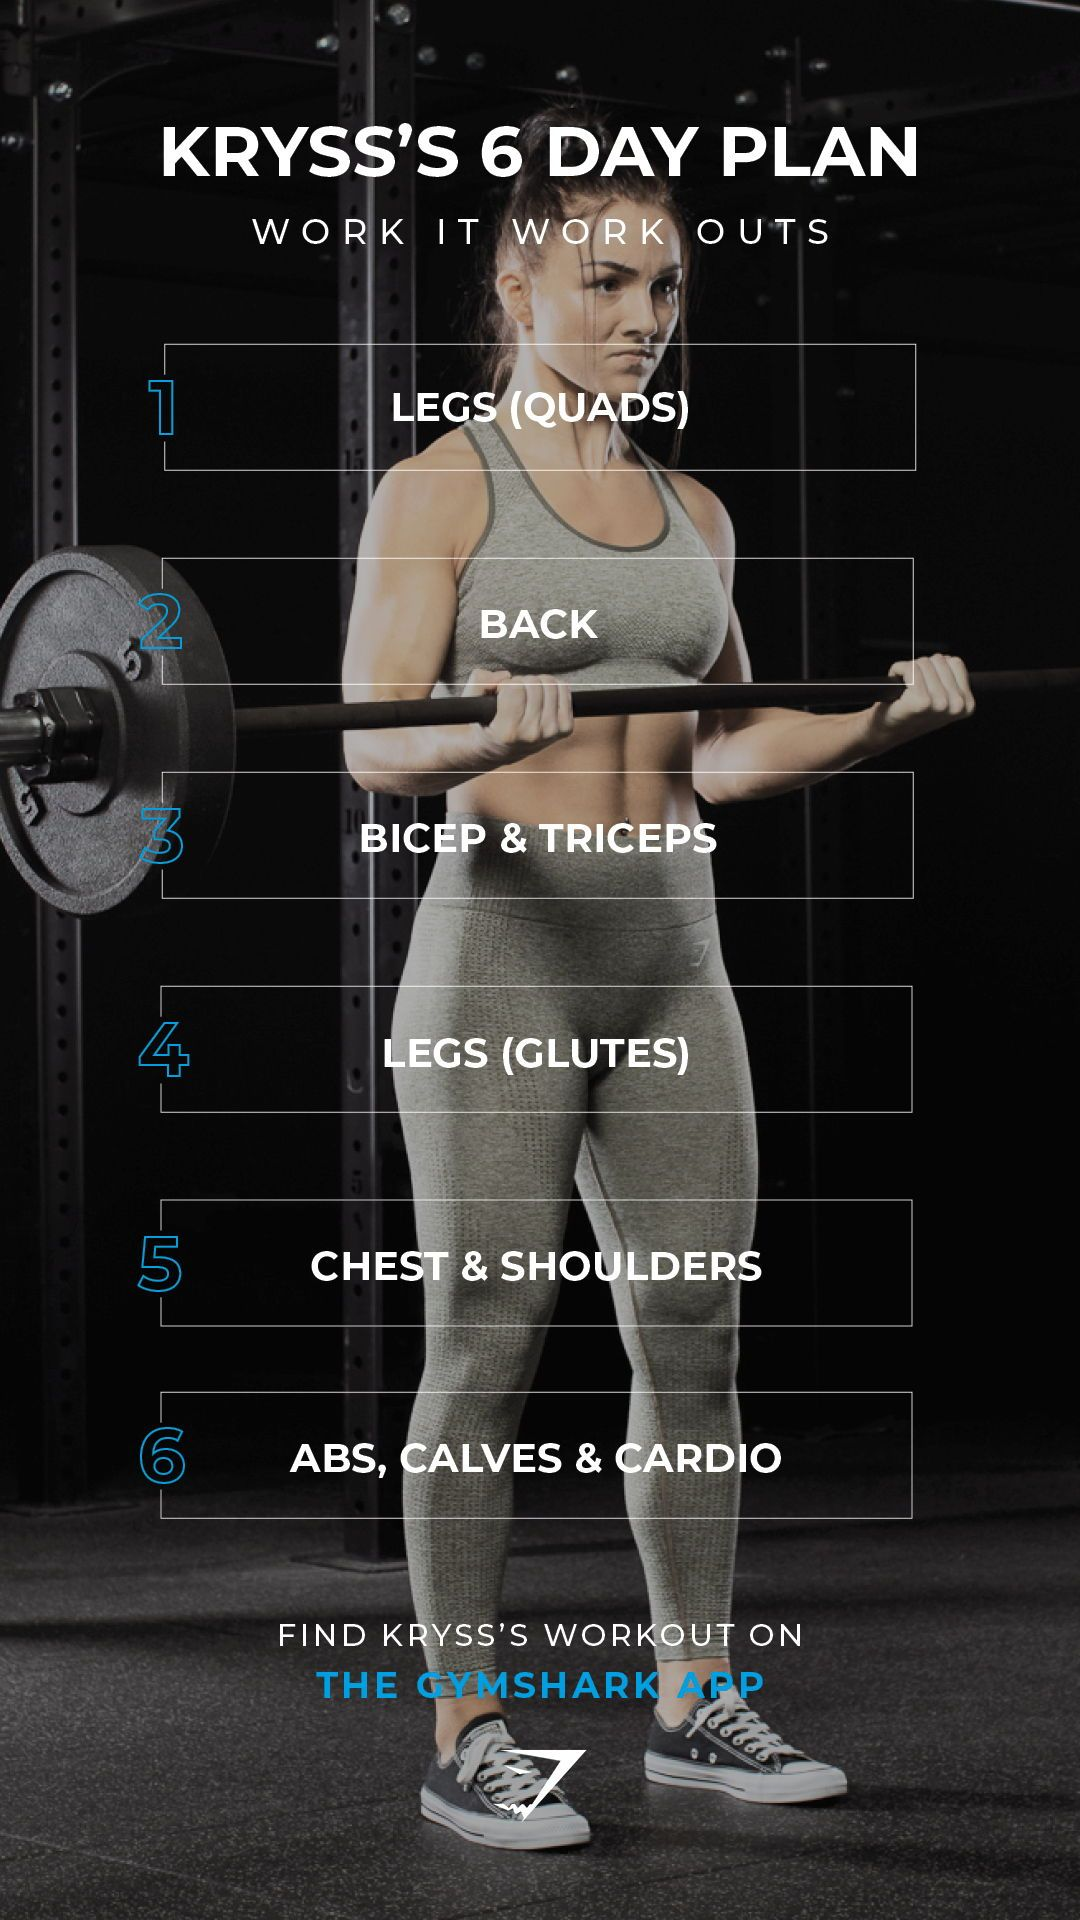 Kryss's 6 Day Plan, work it work outs. Train with Kryss on the Gymshark Conditioning App. Search 'Gy...